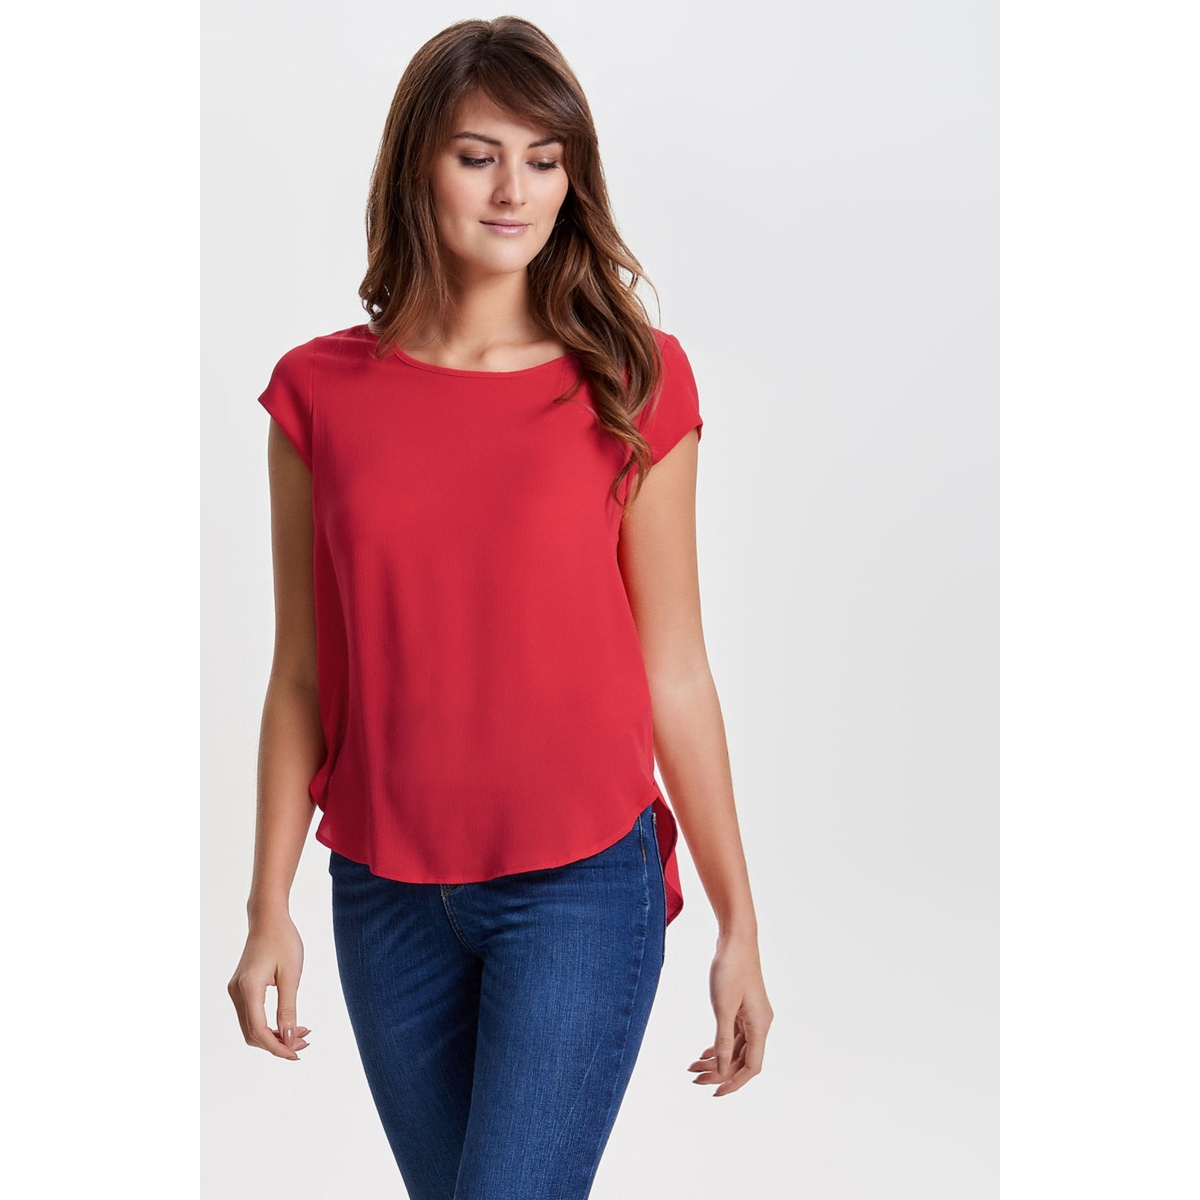 onlvic s/s solid top noos wvn 15142784 only t-shirt high risk red